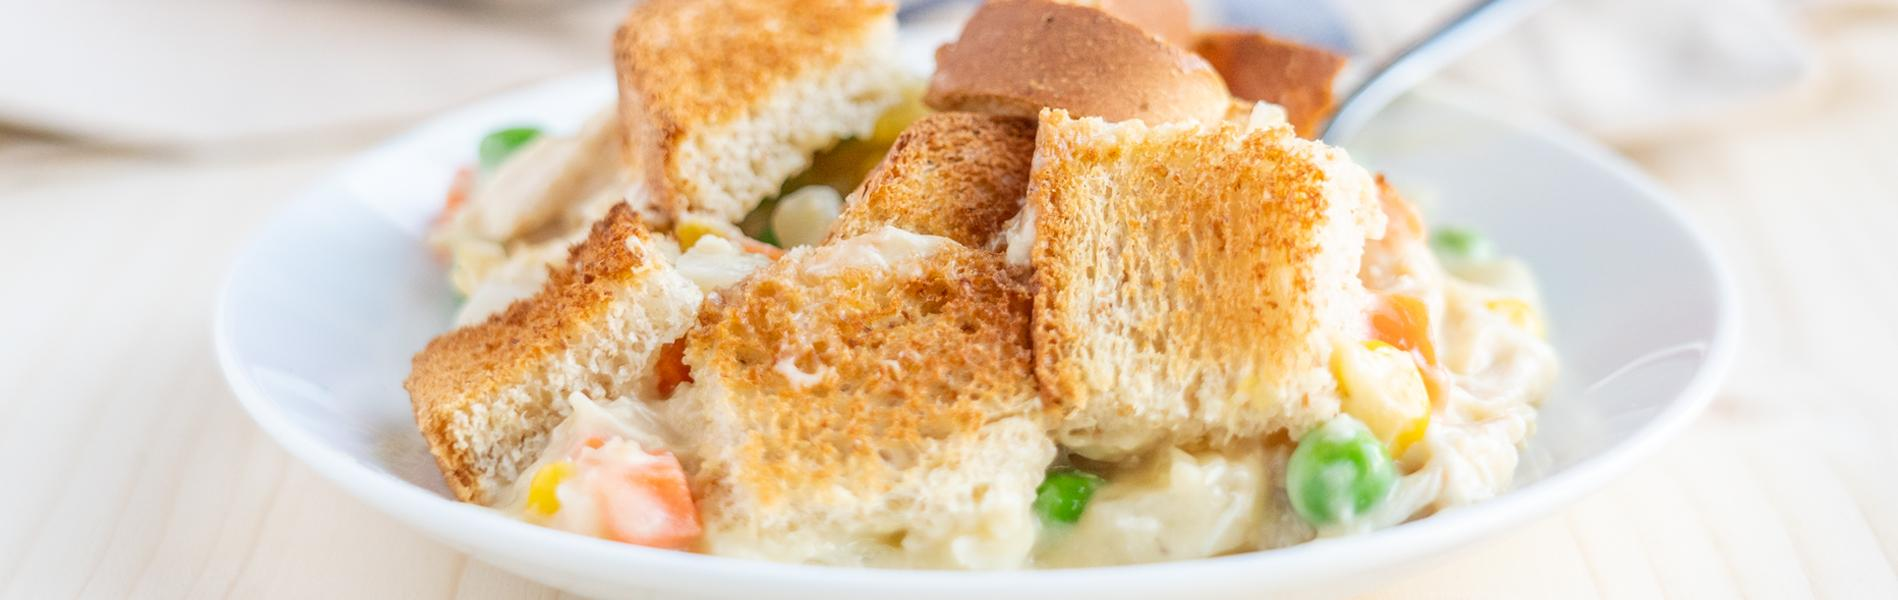 Chicken Pot Pie made with bread and vegetables